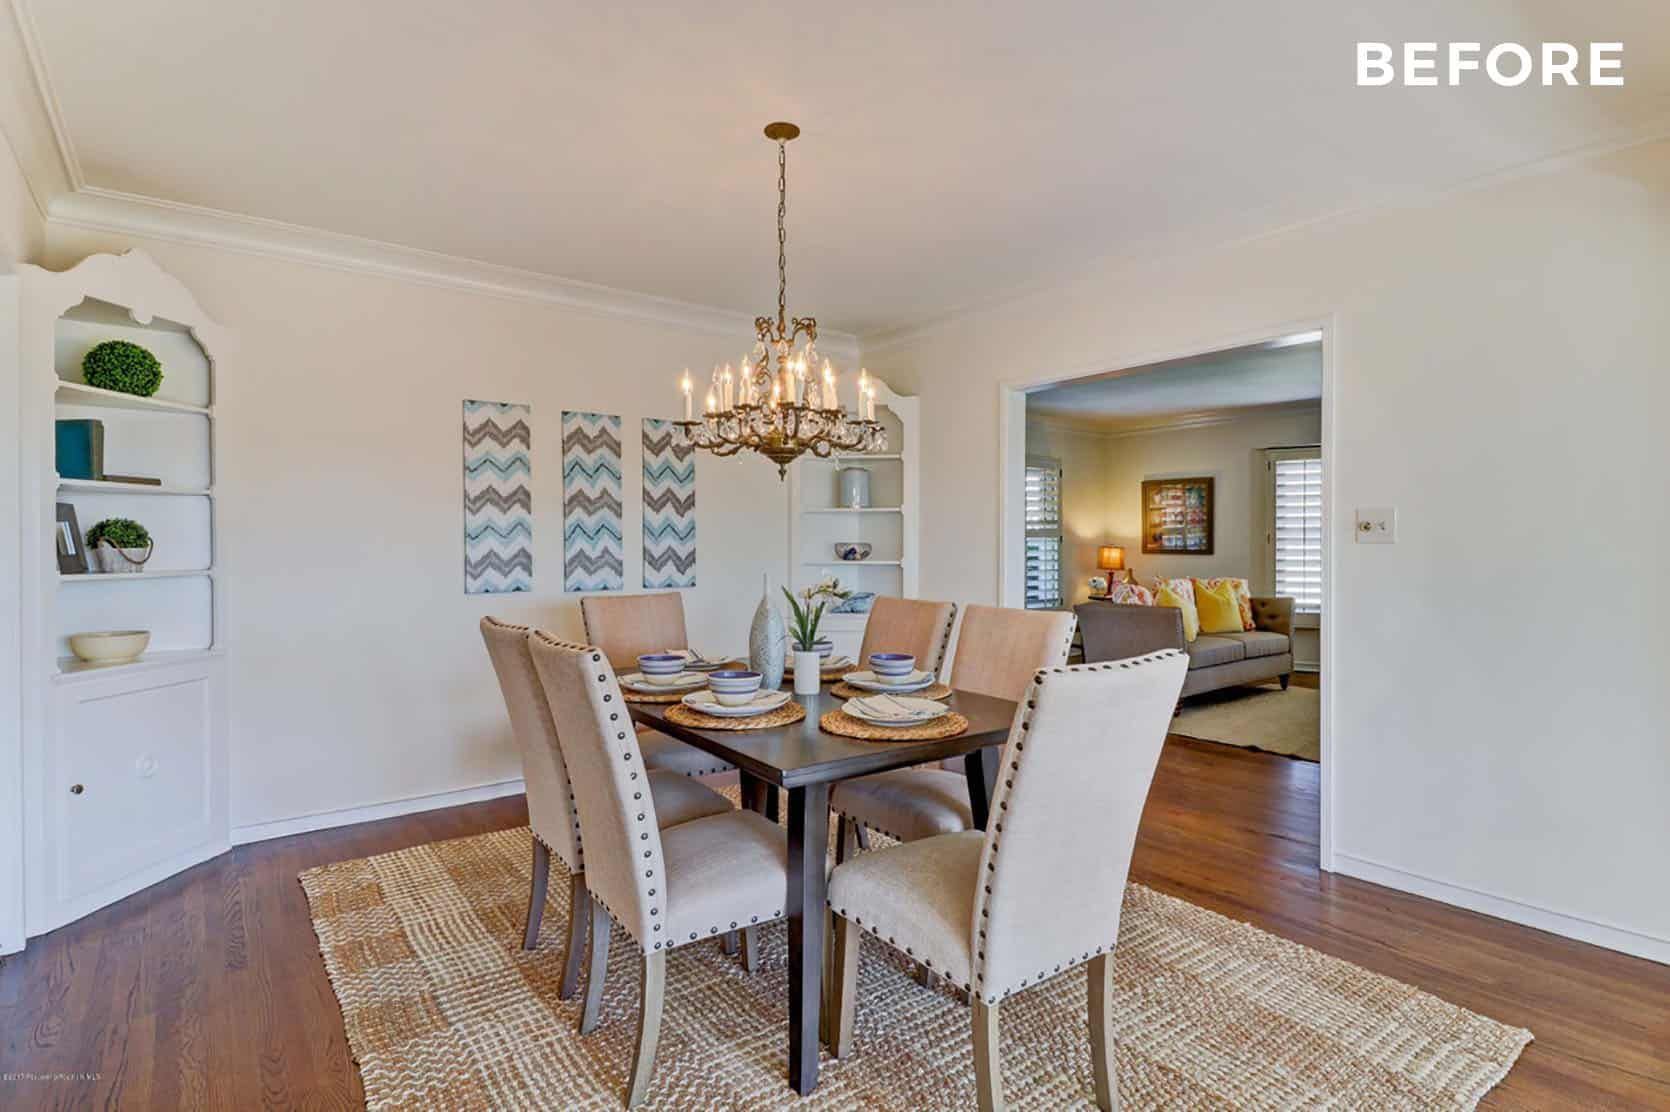 The No Reno House That Looks Completely Renovated Emily Henderson In 2020 Emily Henderson Living Room Dining Room Renovation Dining Room Paint Colors